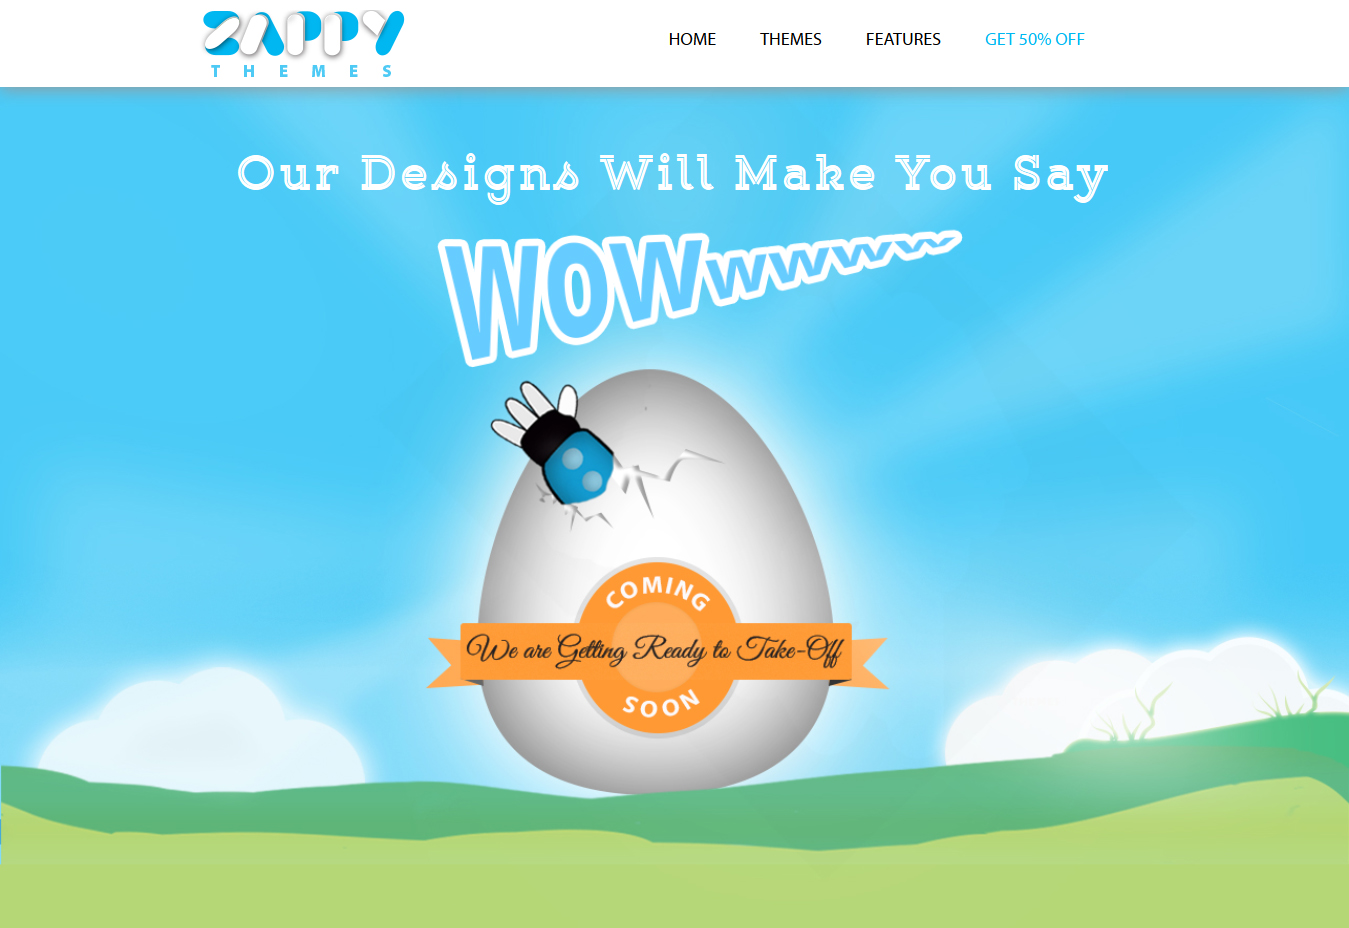 Zappy Themes - Premium WordPress Themes 2014-02-11